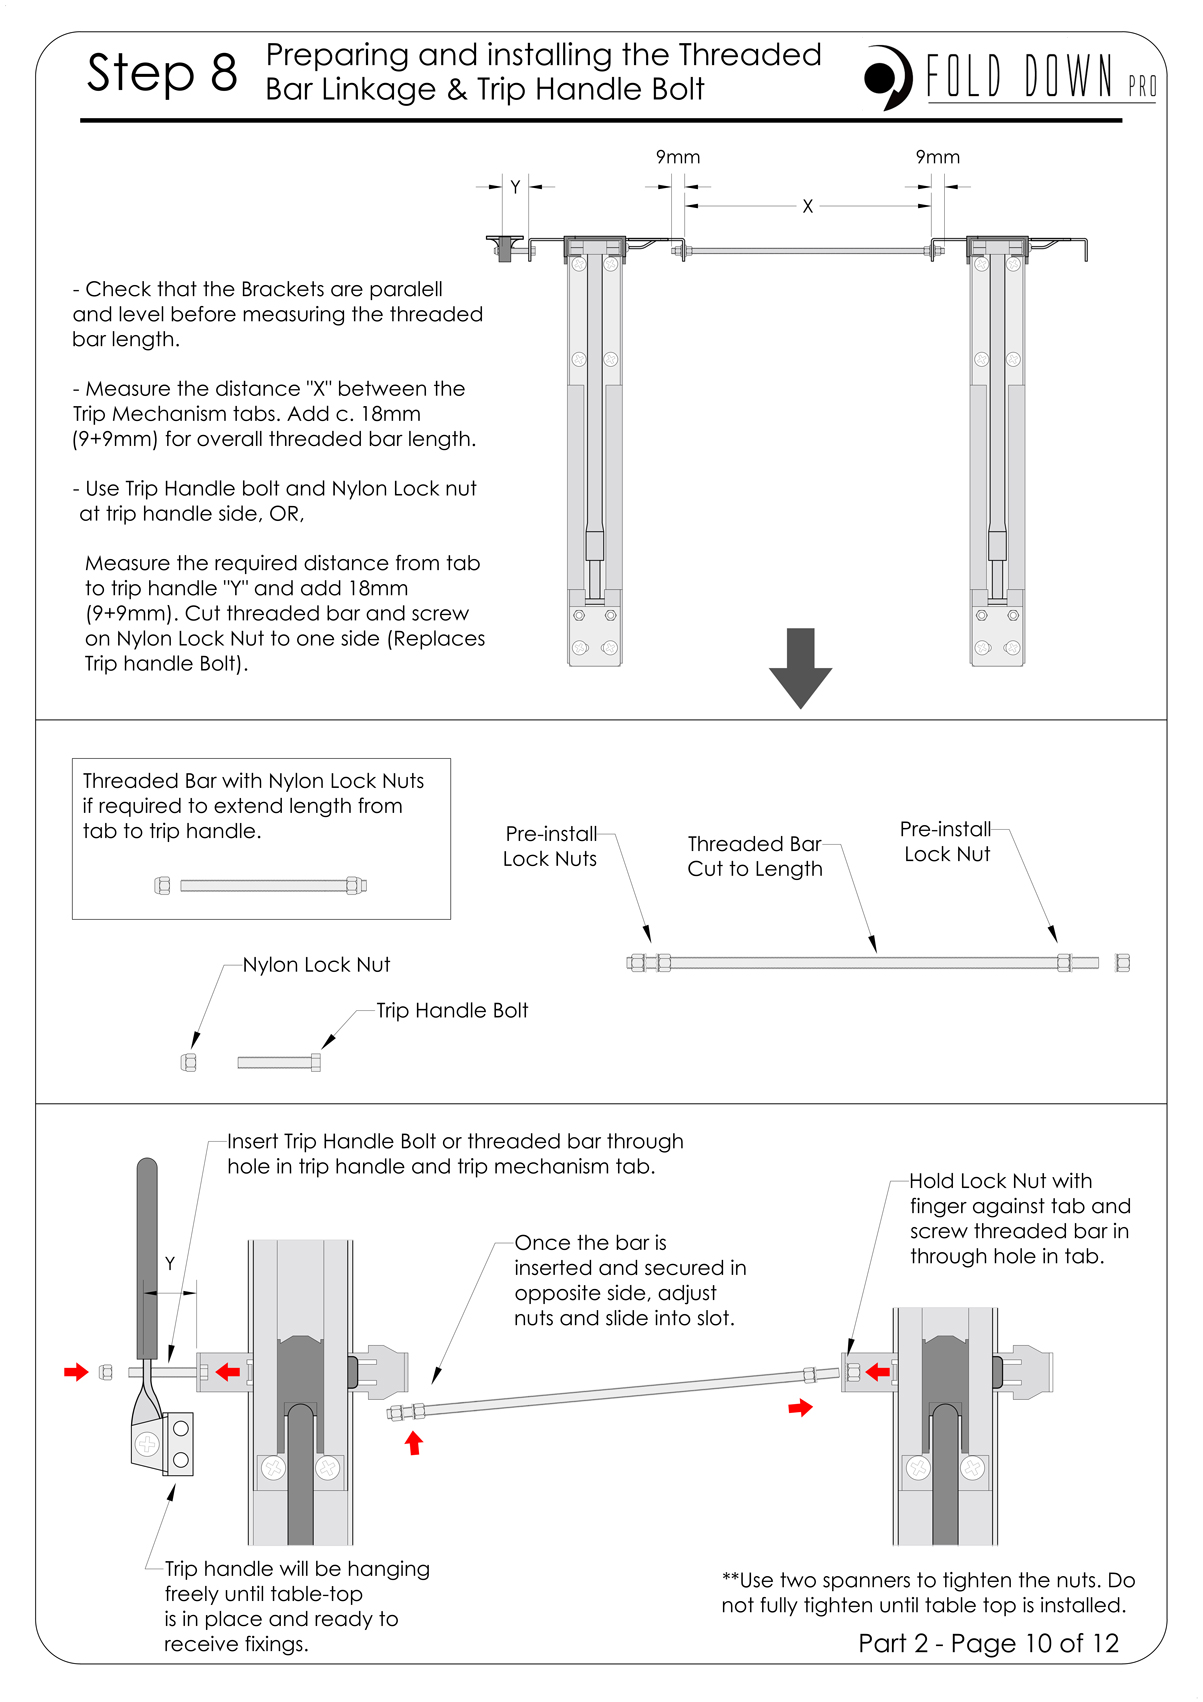 FDP Wall Mounted Folding Bracket Instruction Page 10